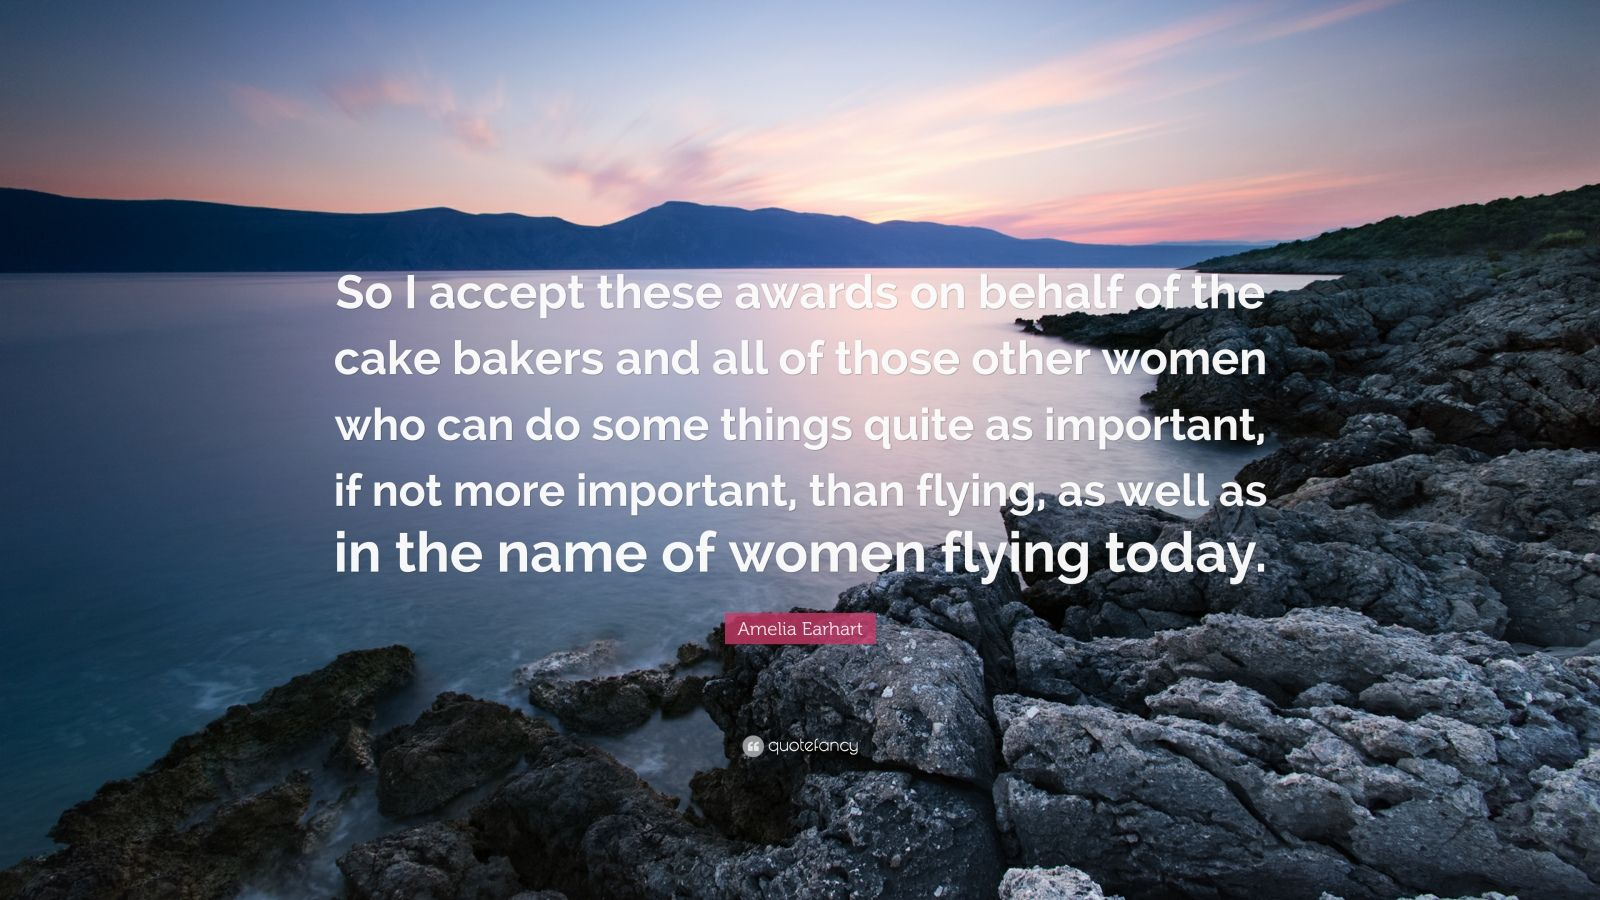 """Amelia Earhart Quote: """"So I accept these awards on behalf of the cake bakers and all of those other women who can do some things quite as important, if not more important, than flying, as well as in the name of women flying today."""""""